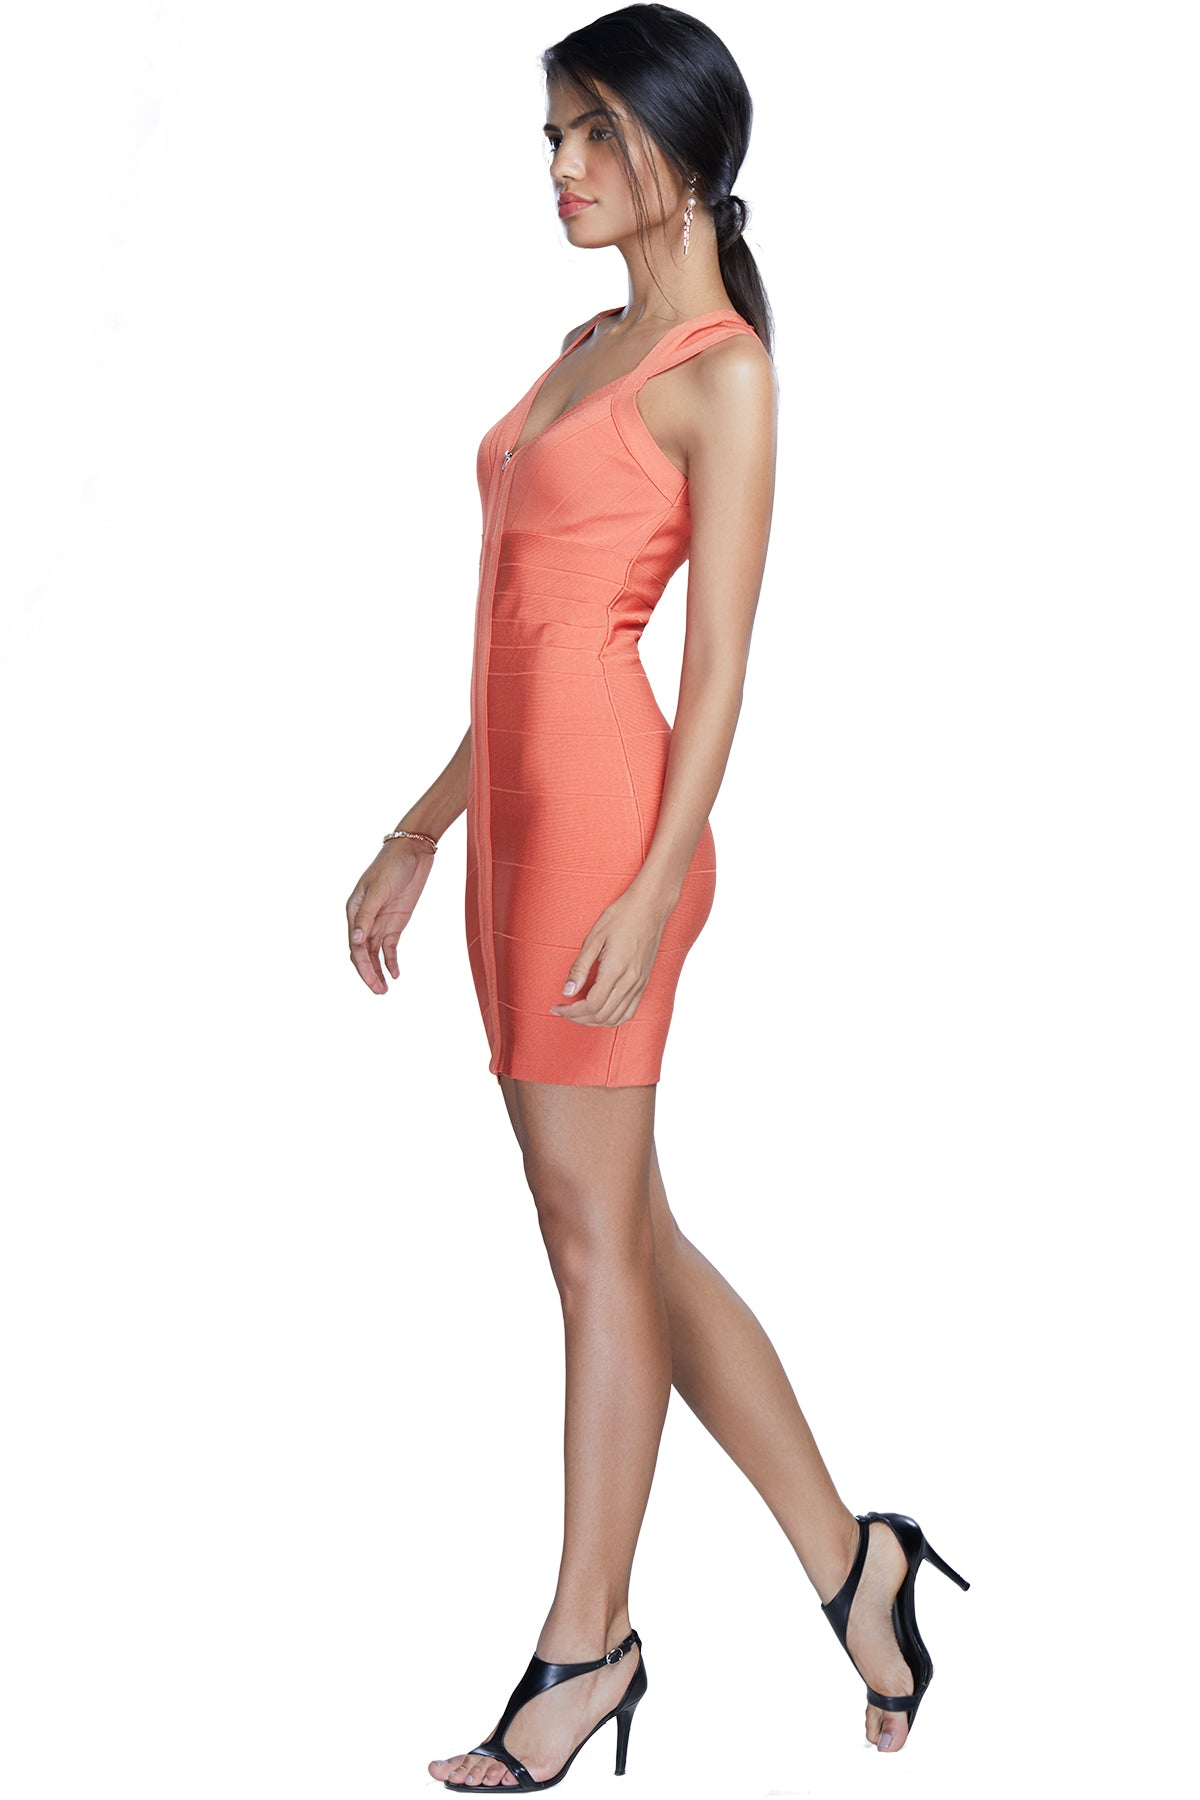 Seal the deal in this form-fitted peach bandage dress - flirty and fun as ever and with its fashion quotient topping the charts.